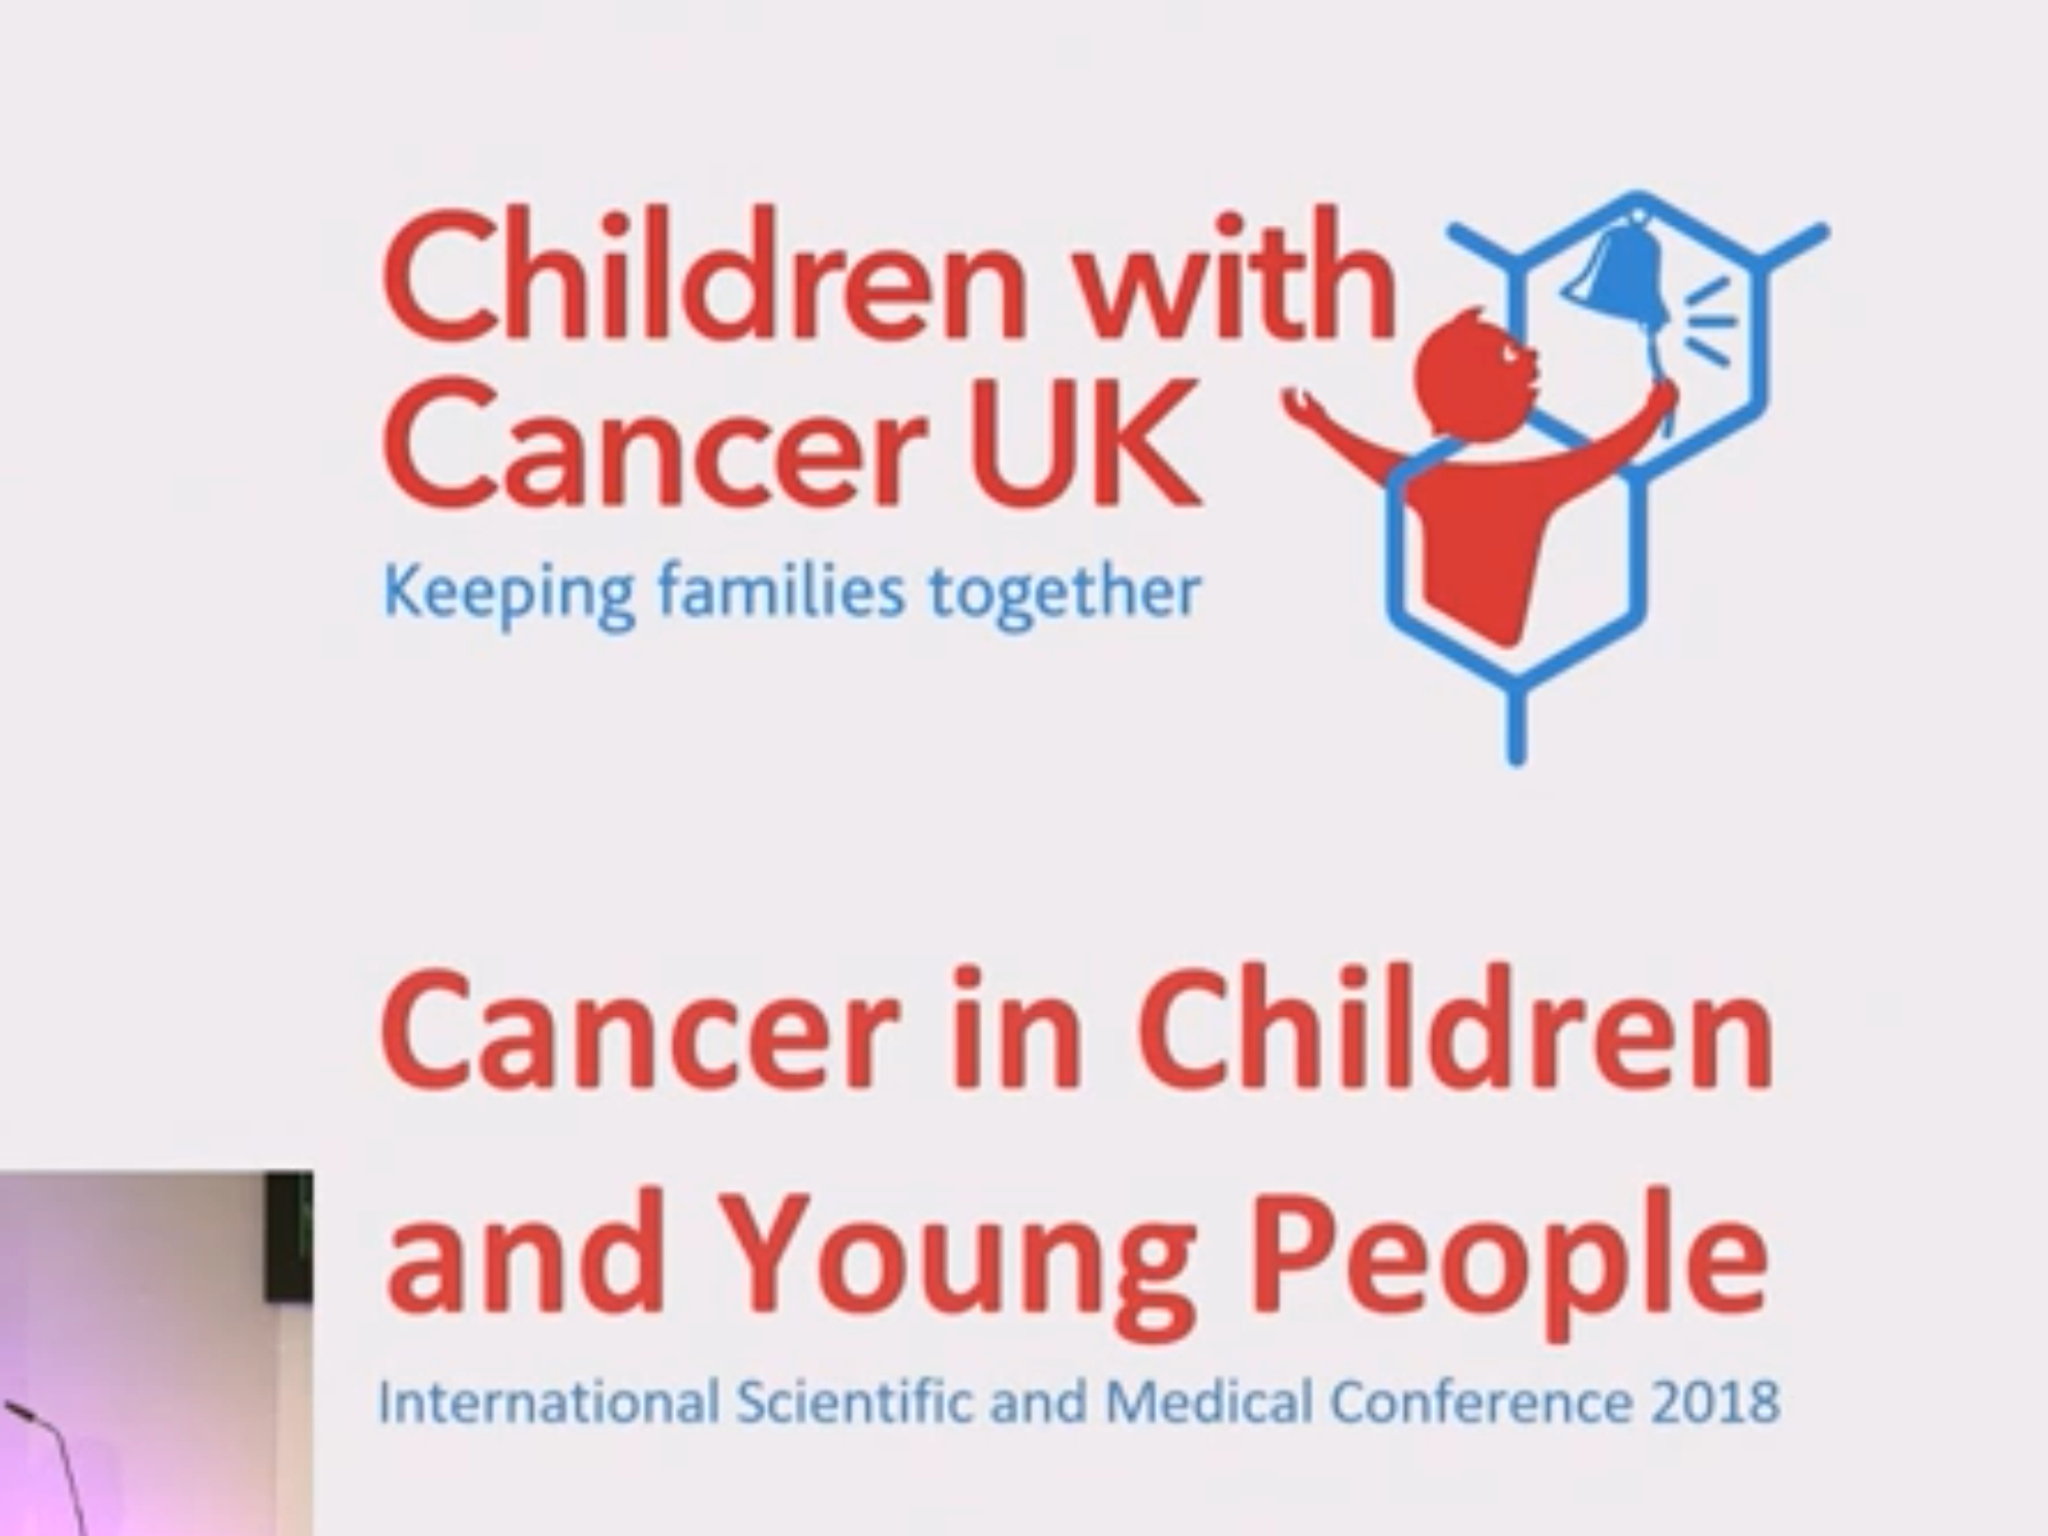 Children with cancer conference - Chris Woollams